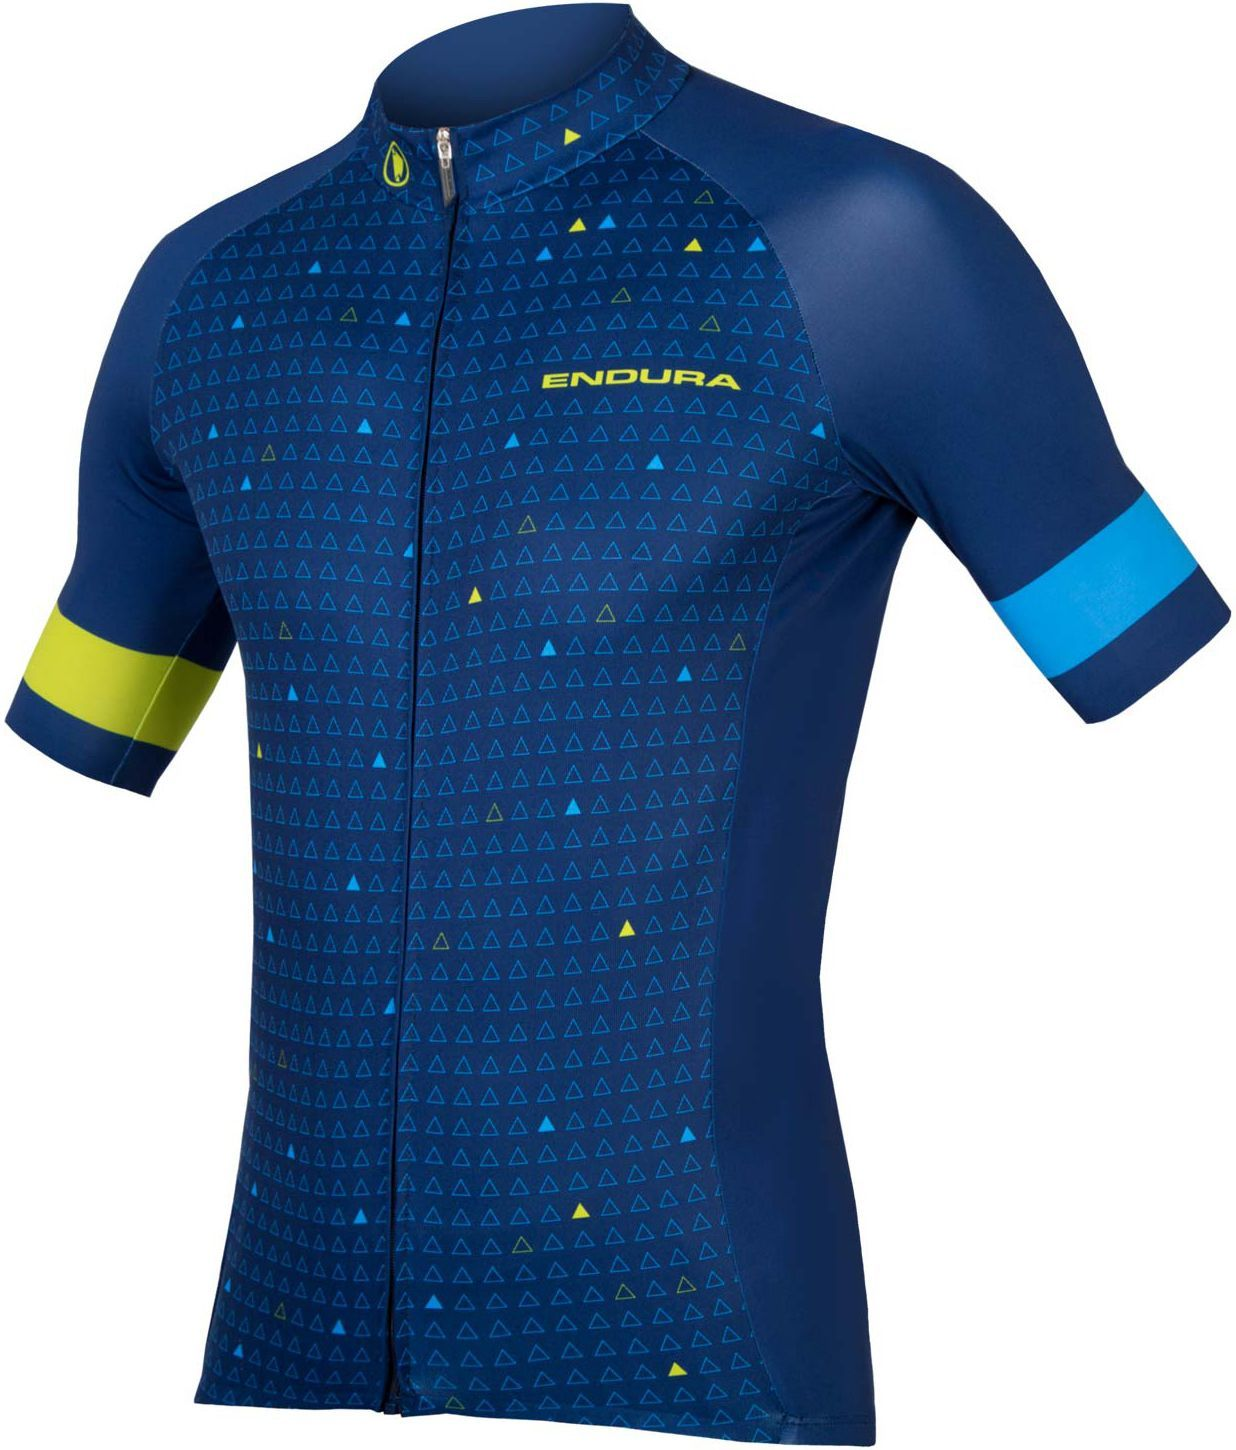 Endura Graphics S S short sleeve cycling jersey blue (E3145NA). Previous 785f4601a